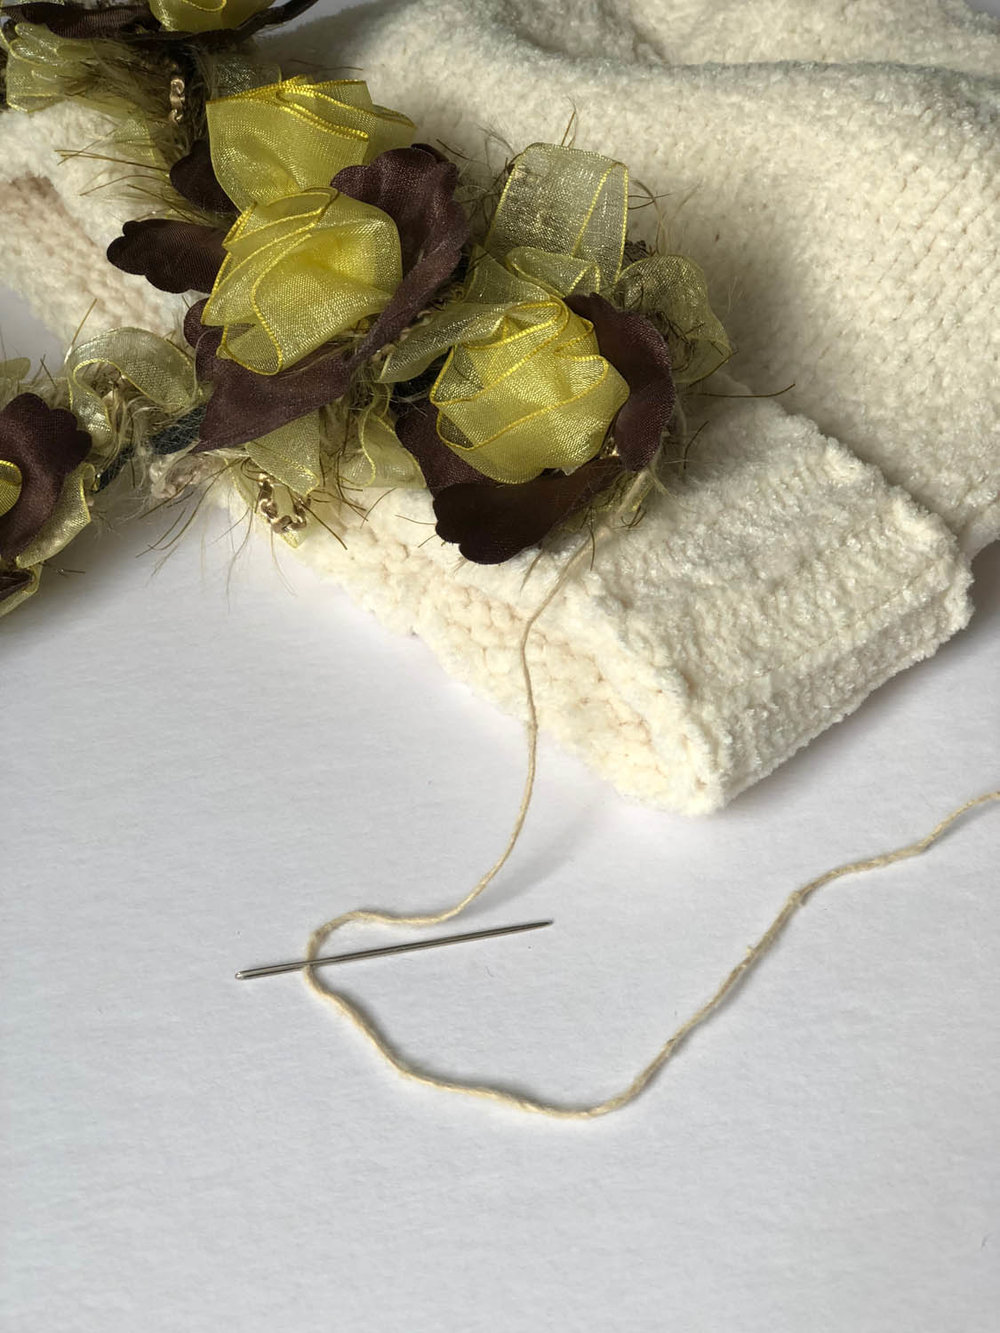 needle and thread sewing elastic trim to embellish a white chenille ladies winter hat